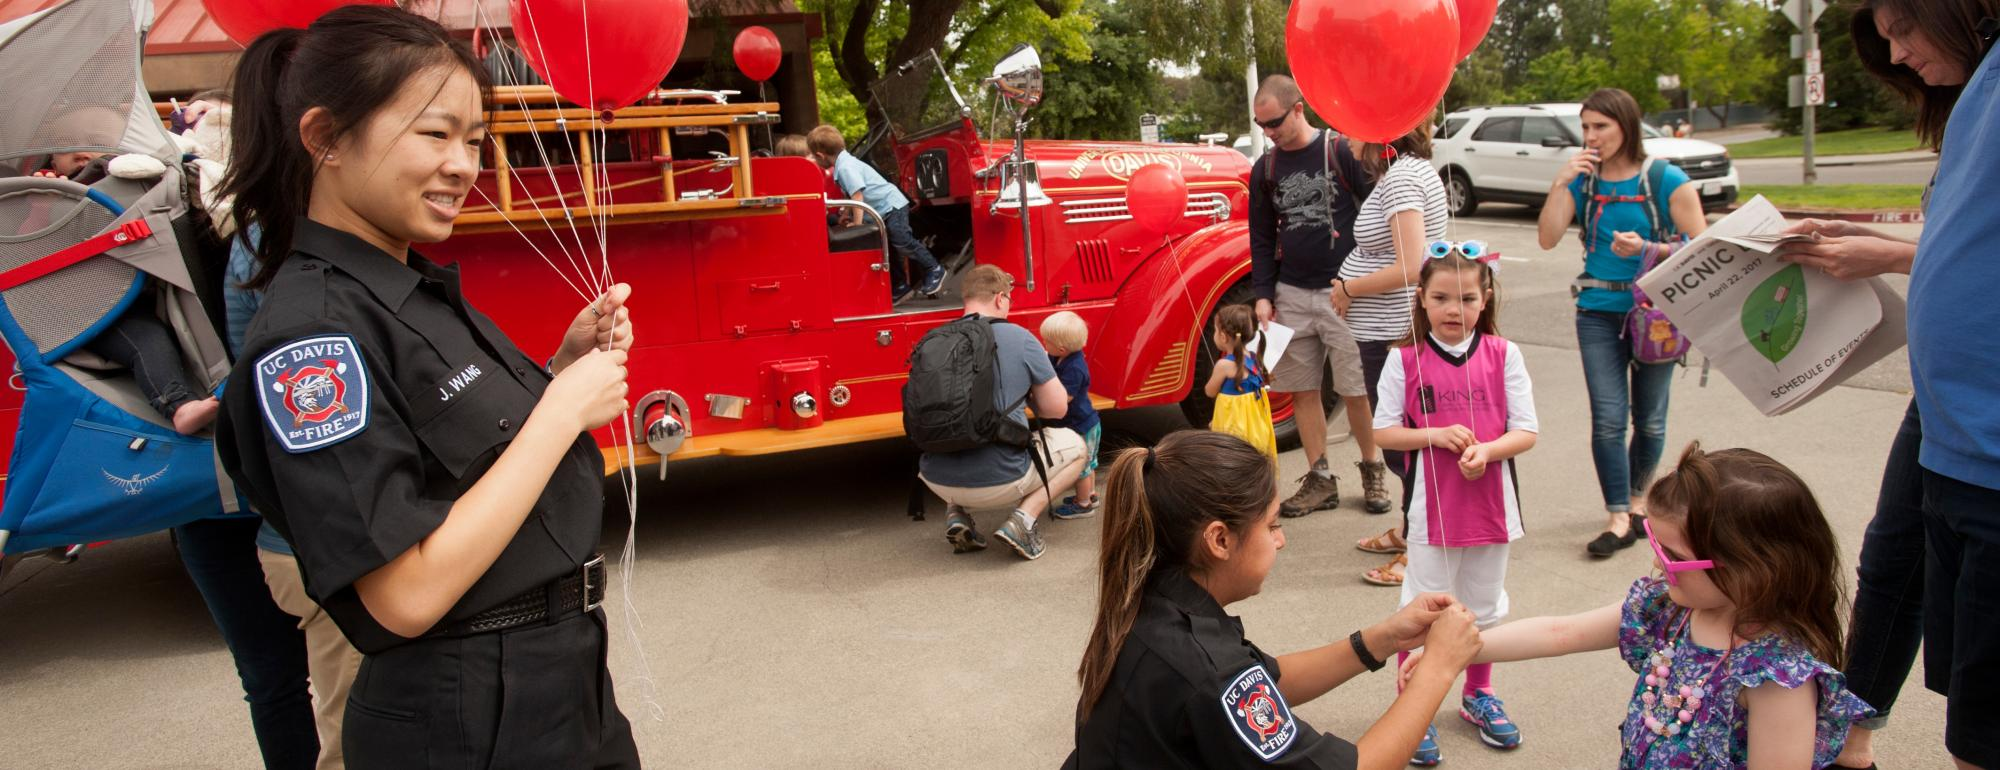 Student EMT gives child balloons at Picnic Day